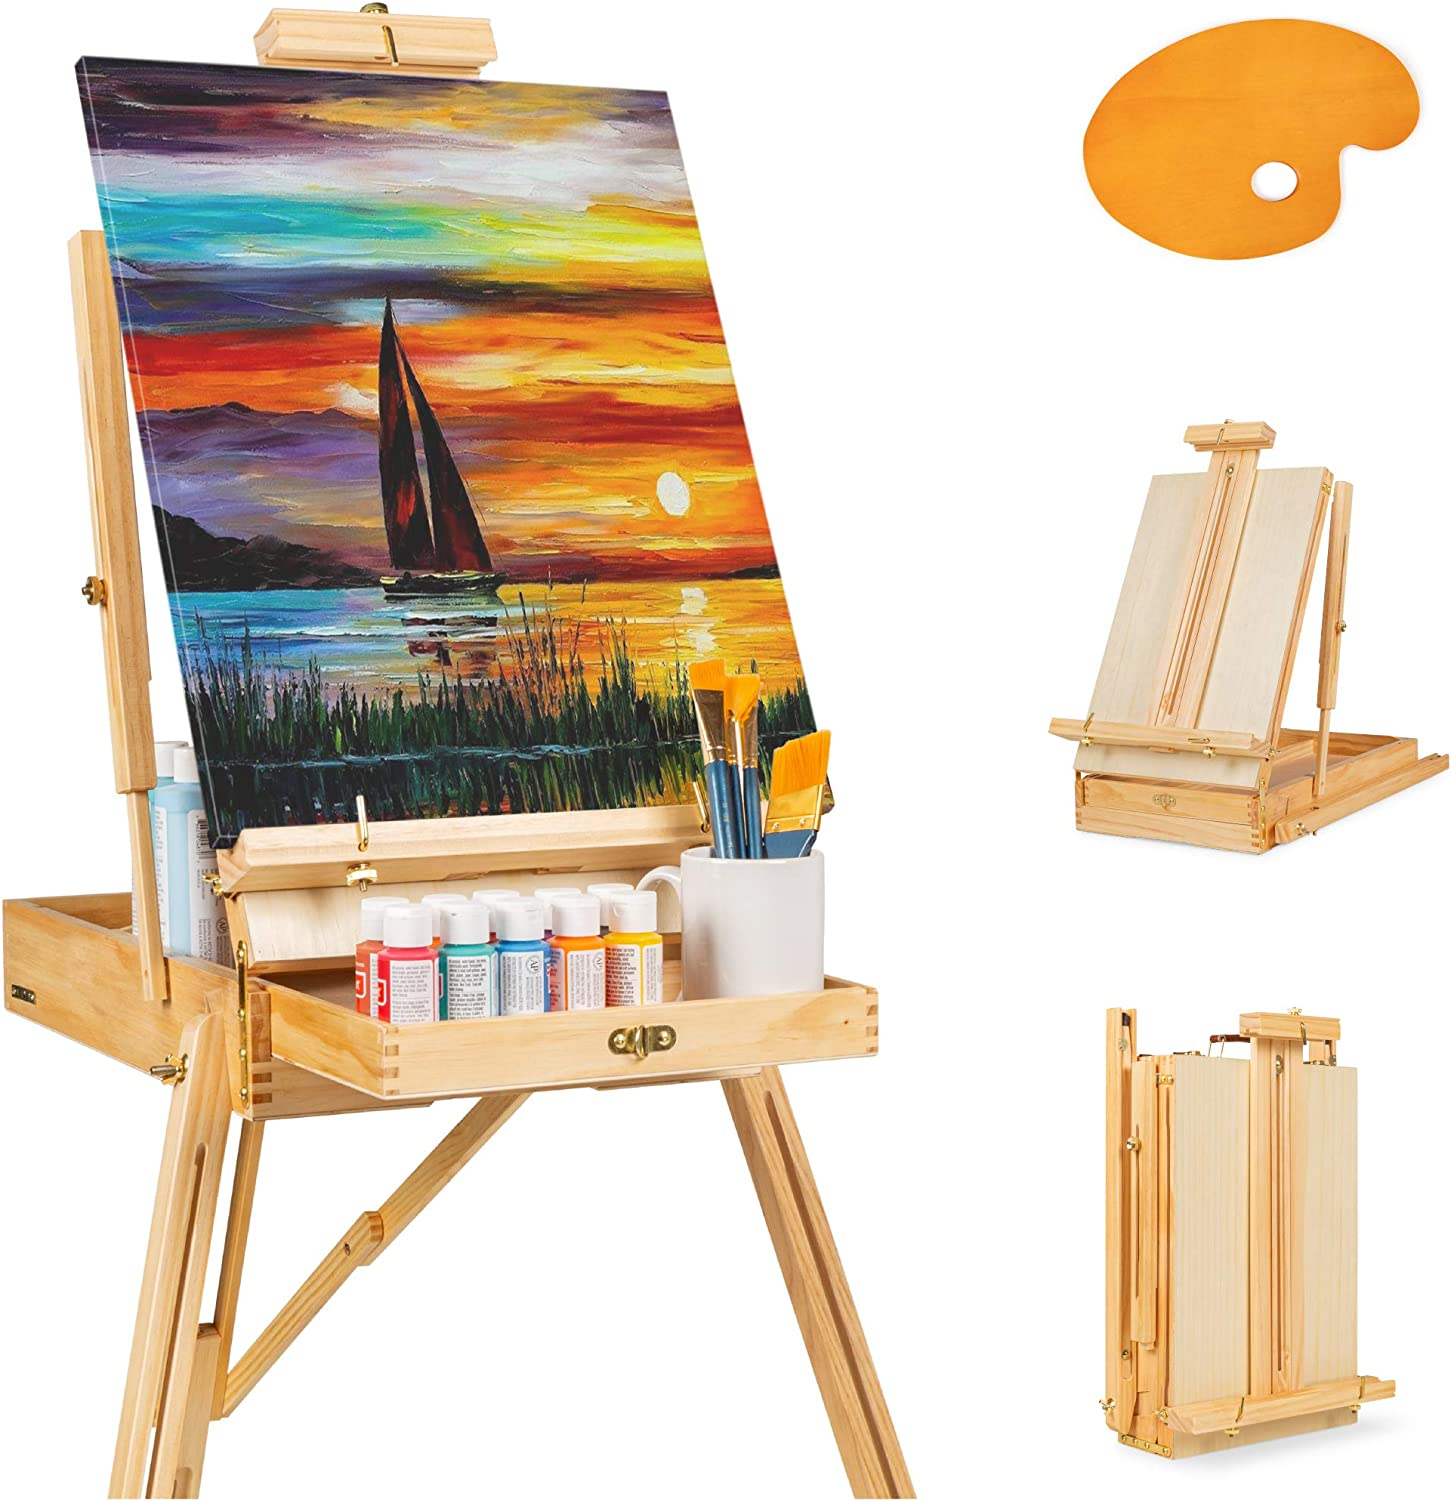 Best Choice Products Portable Wooden Folding French Easel Adjustable Sketch Box Artist Tripod For Painting Drawing Sketching W Drawer Pallet Handle Natural Arts Crafts Sewing